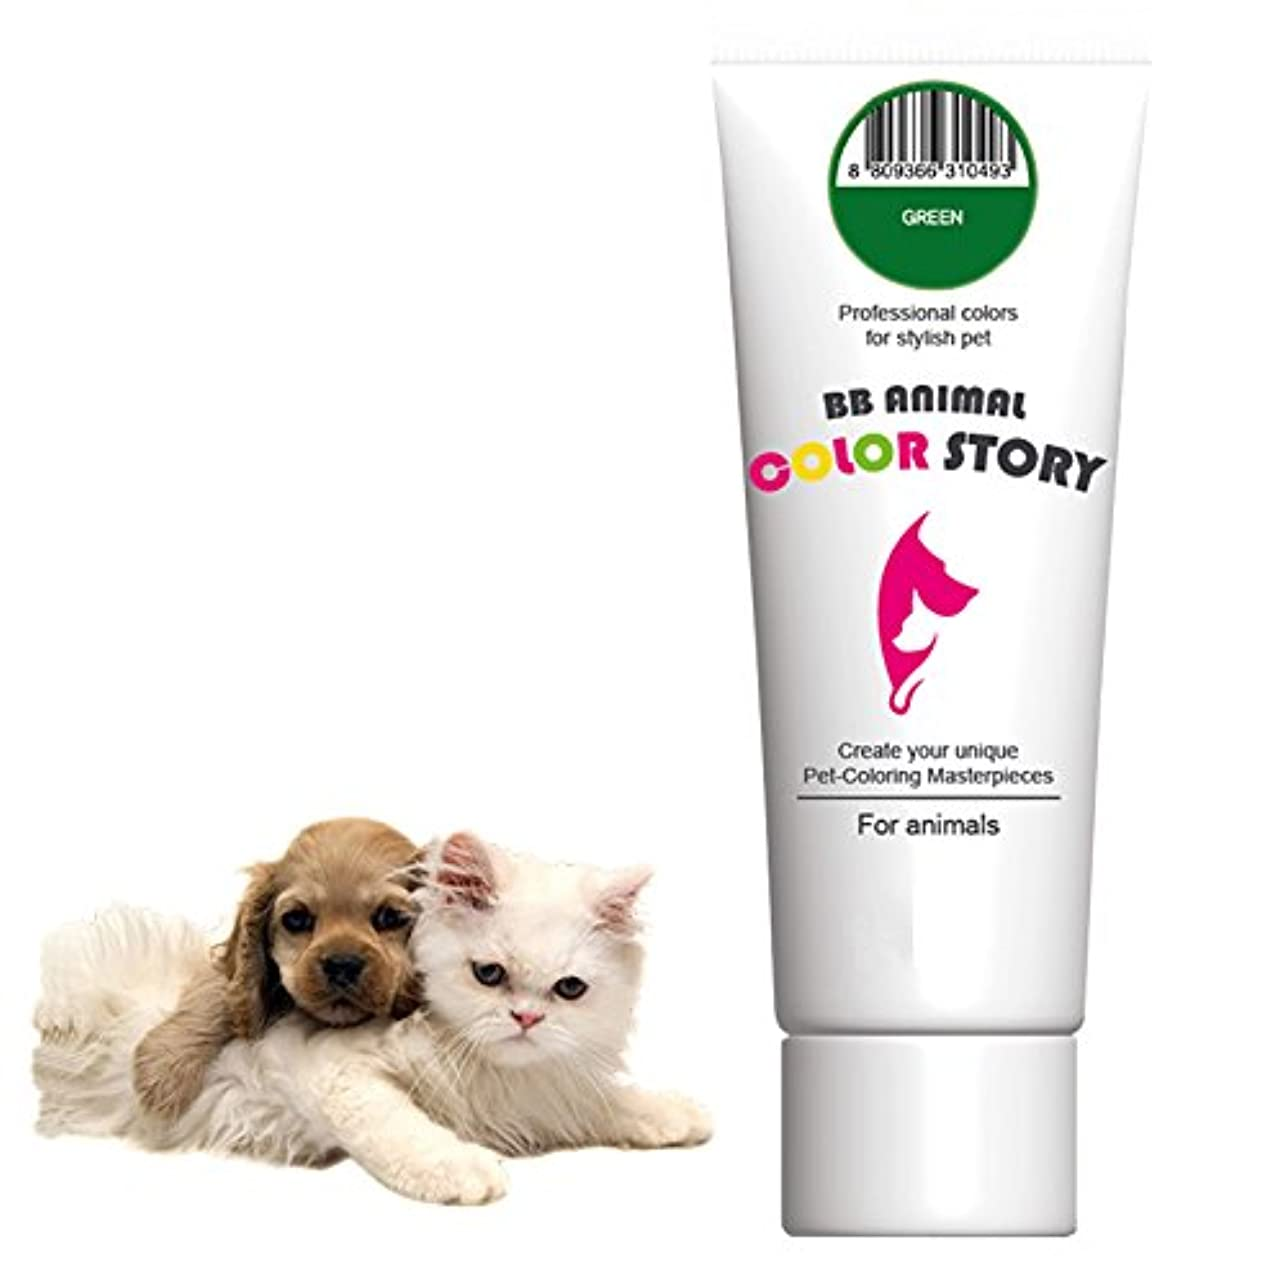 後方に合図心理的に毛染め, 犬ヘアダイ, Green, カラーリング Dog Hair Dye Hair Coloring Hair Bleach Professional Colors for Stylish Pet 50ml 並行輸入